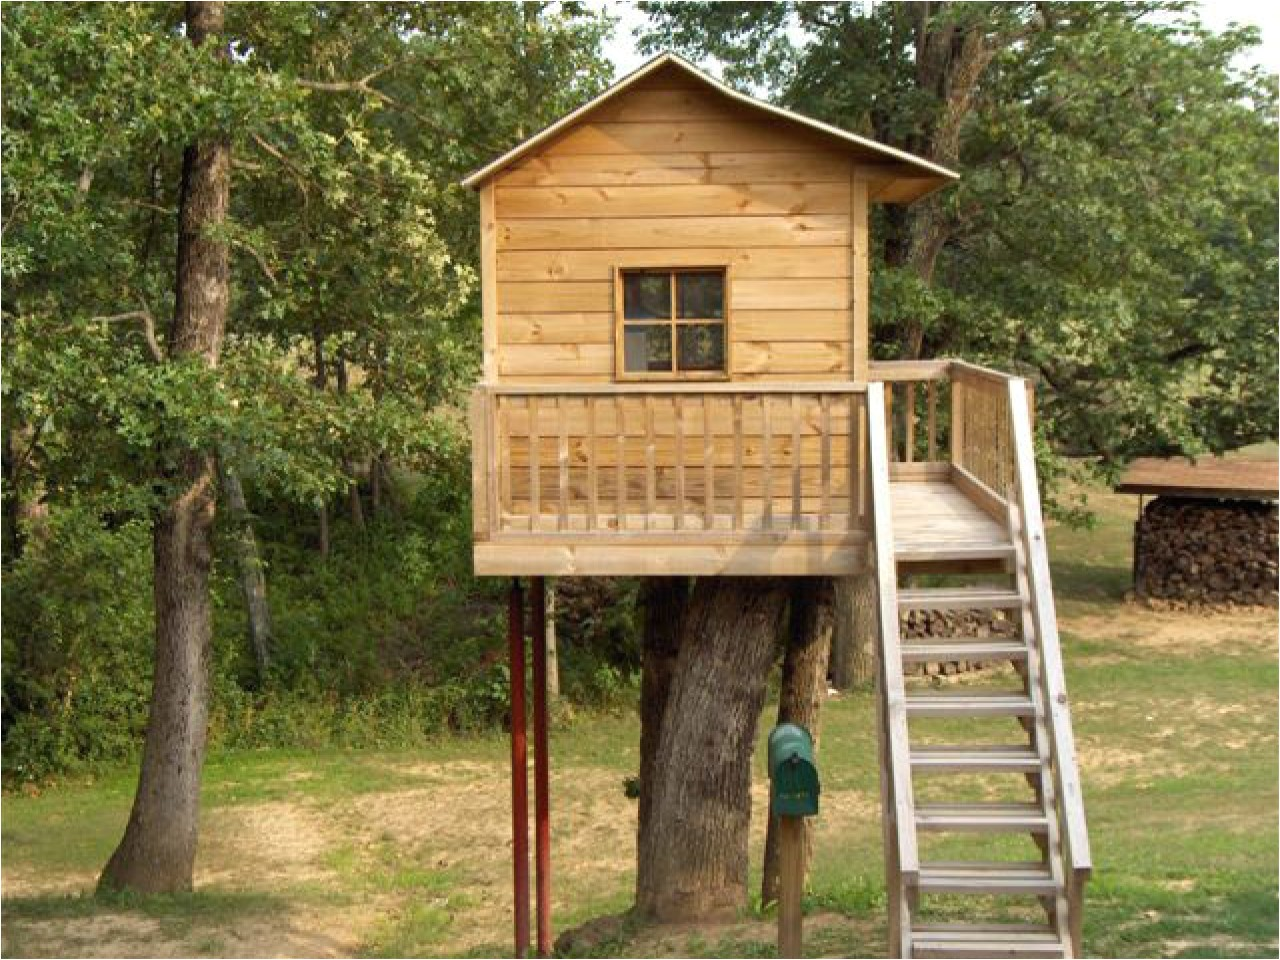 2a4995395cbb7bfc simple tree house design plans easy to build tree house